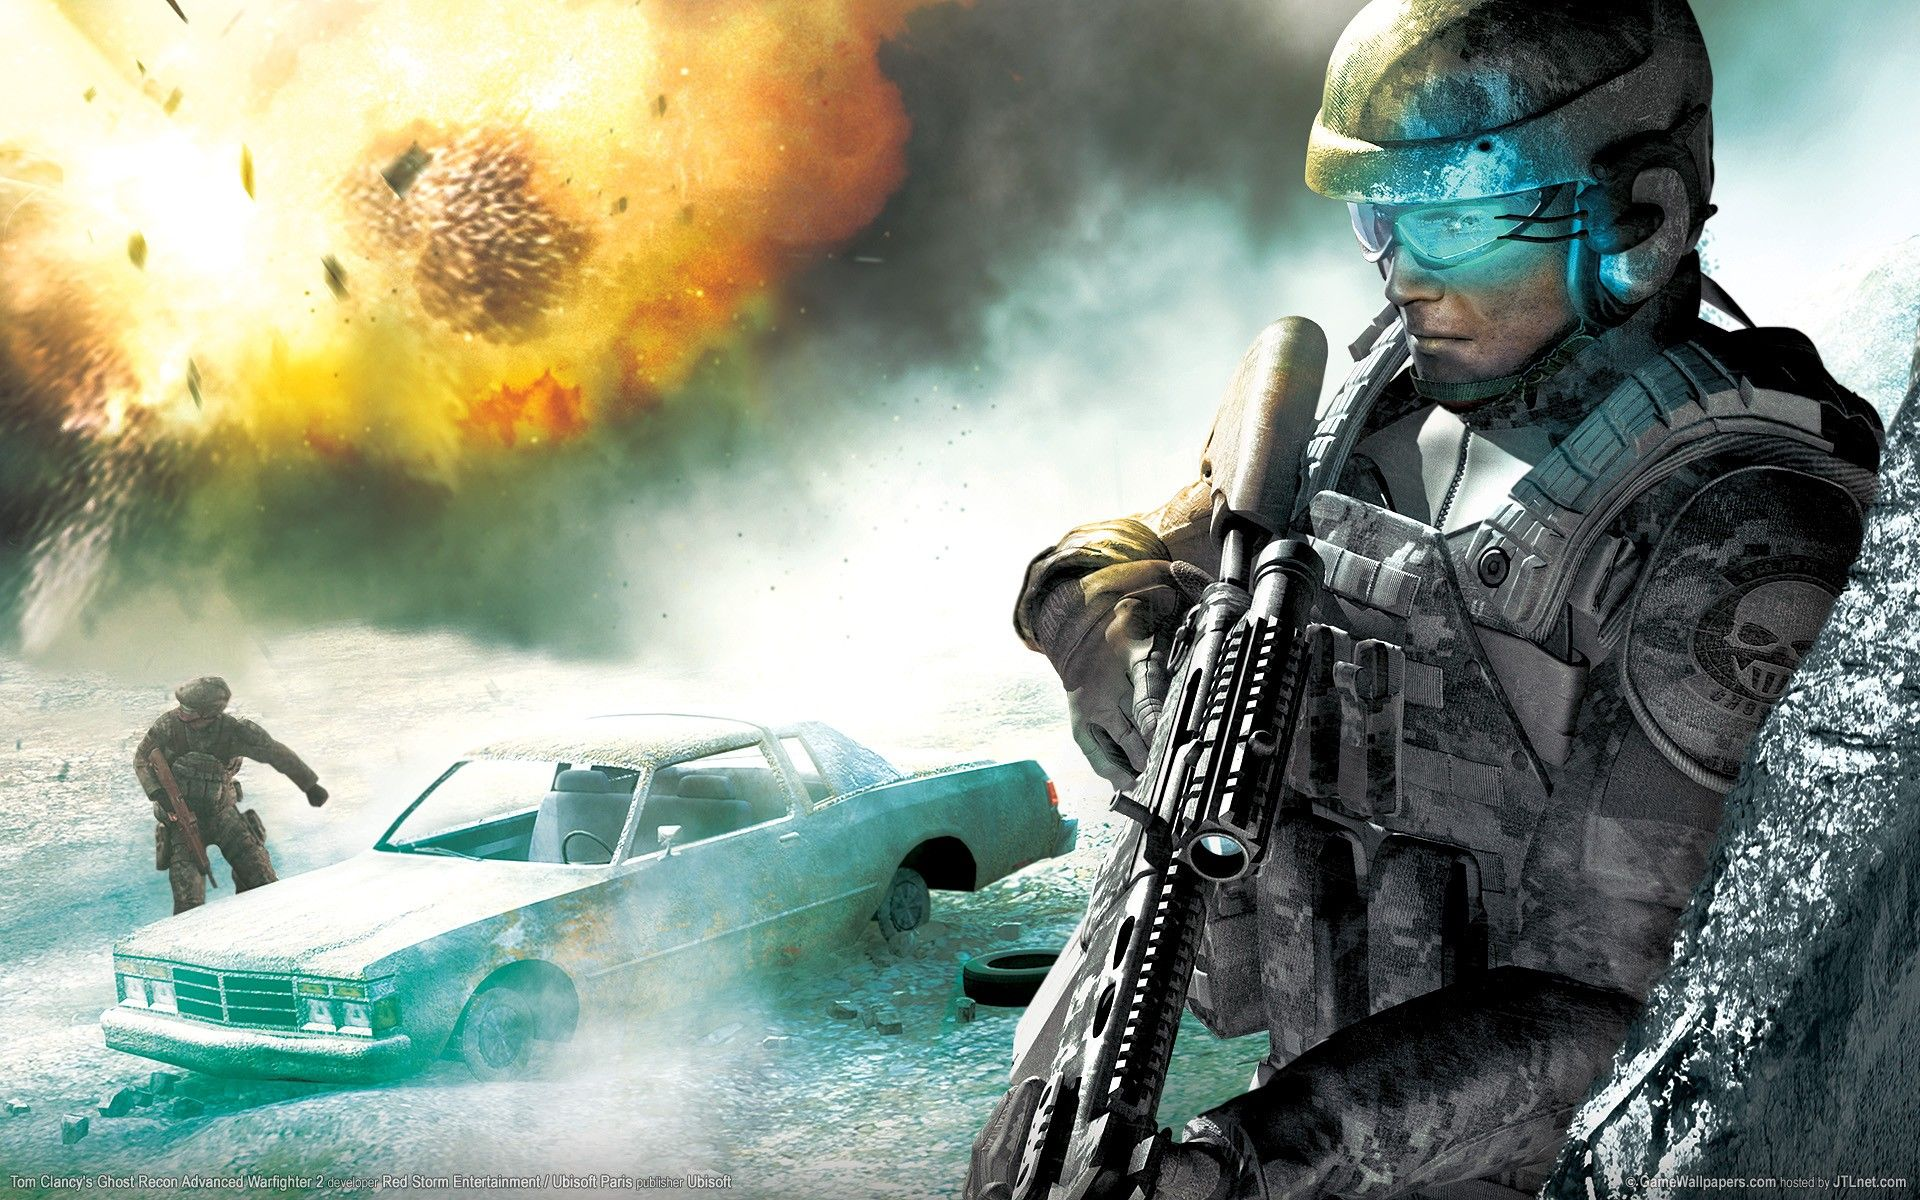 cool game backgrounds wallpaper - http://wallpaperzoo/cool-game